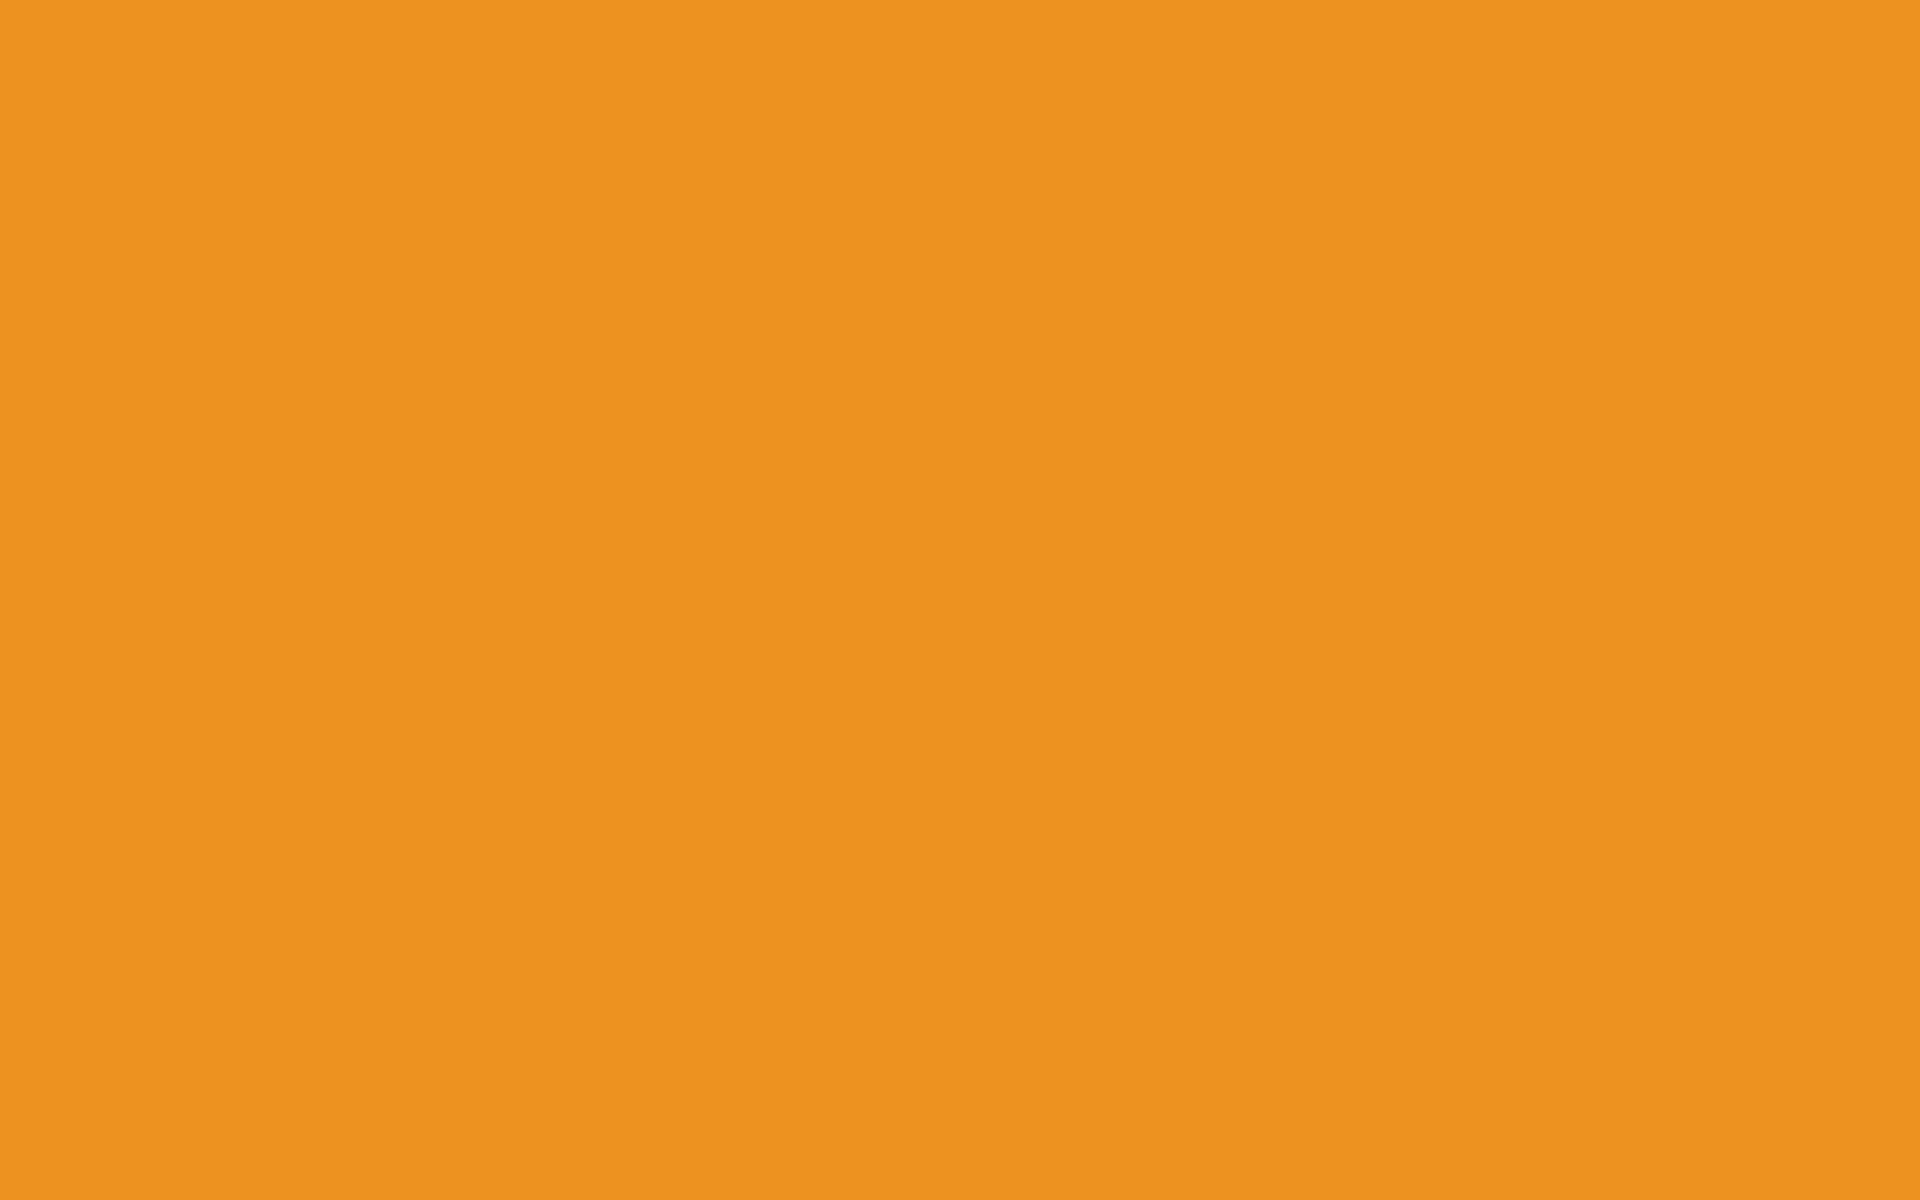 1920x1200 Carrot Orange Solid Color Background